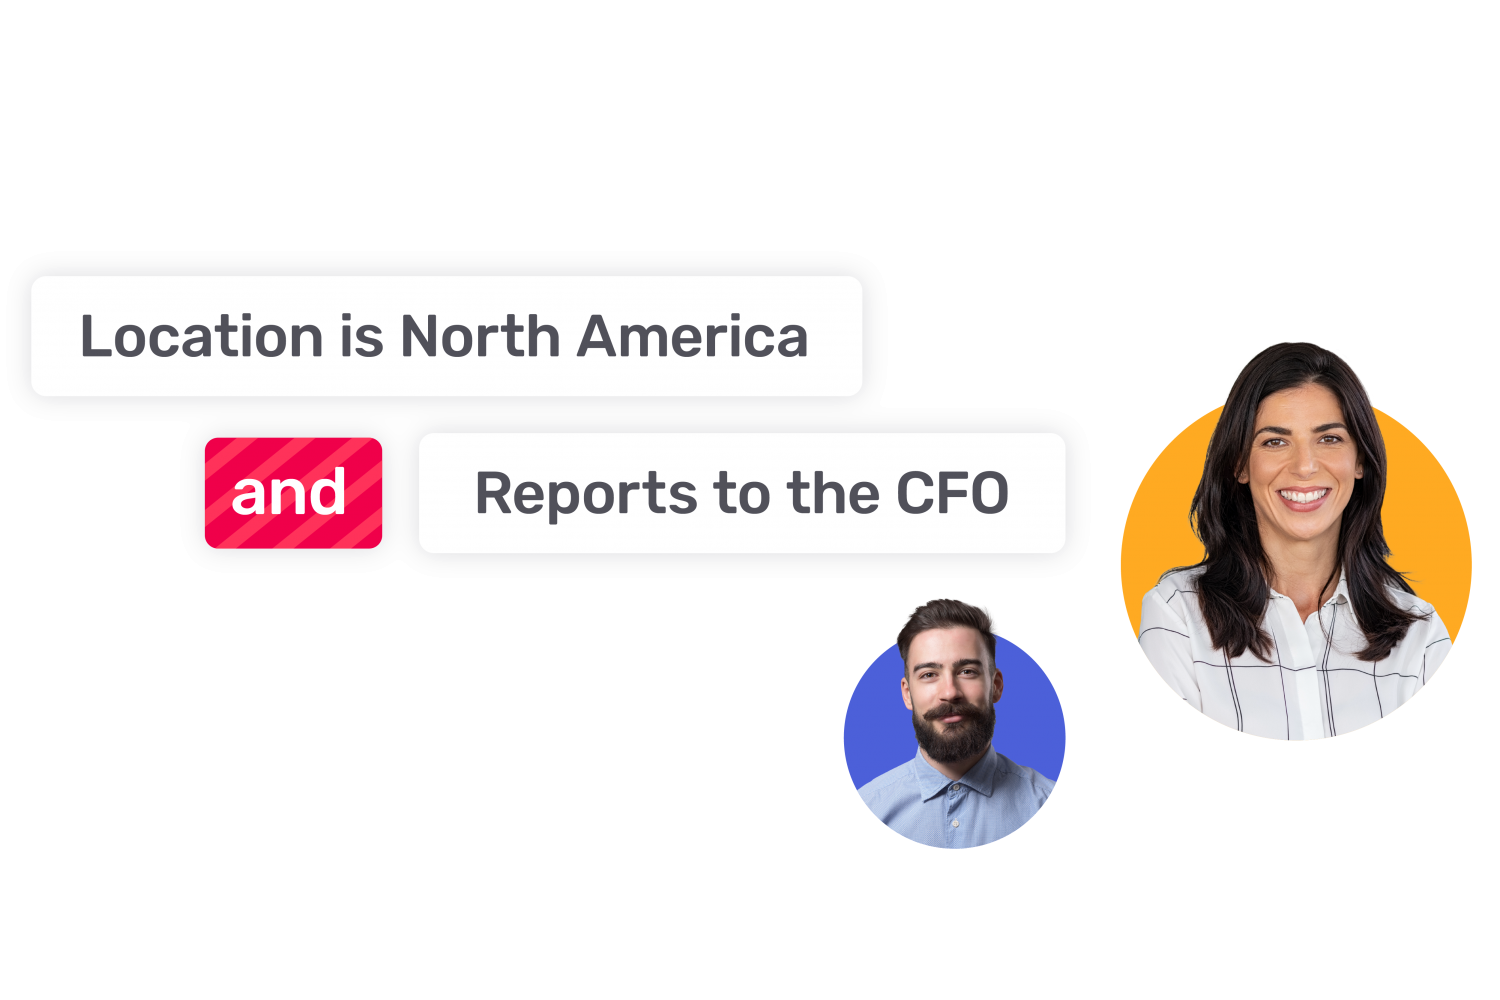 Two employees who are in the segment where the location is North America and they report to the CFO